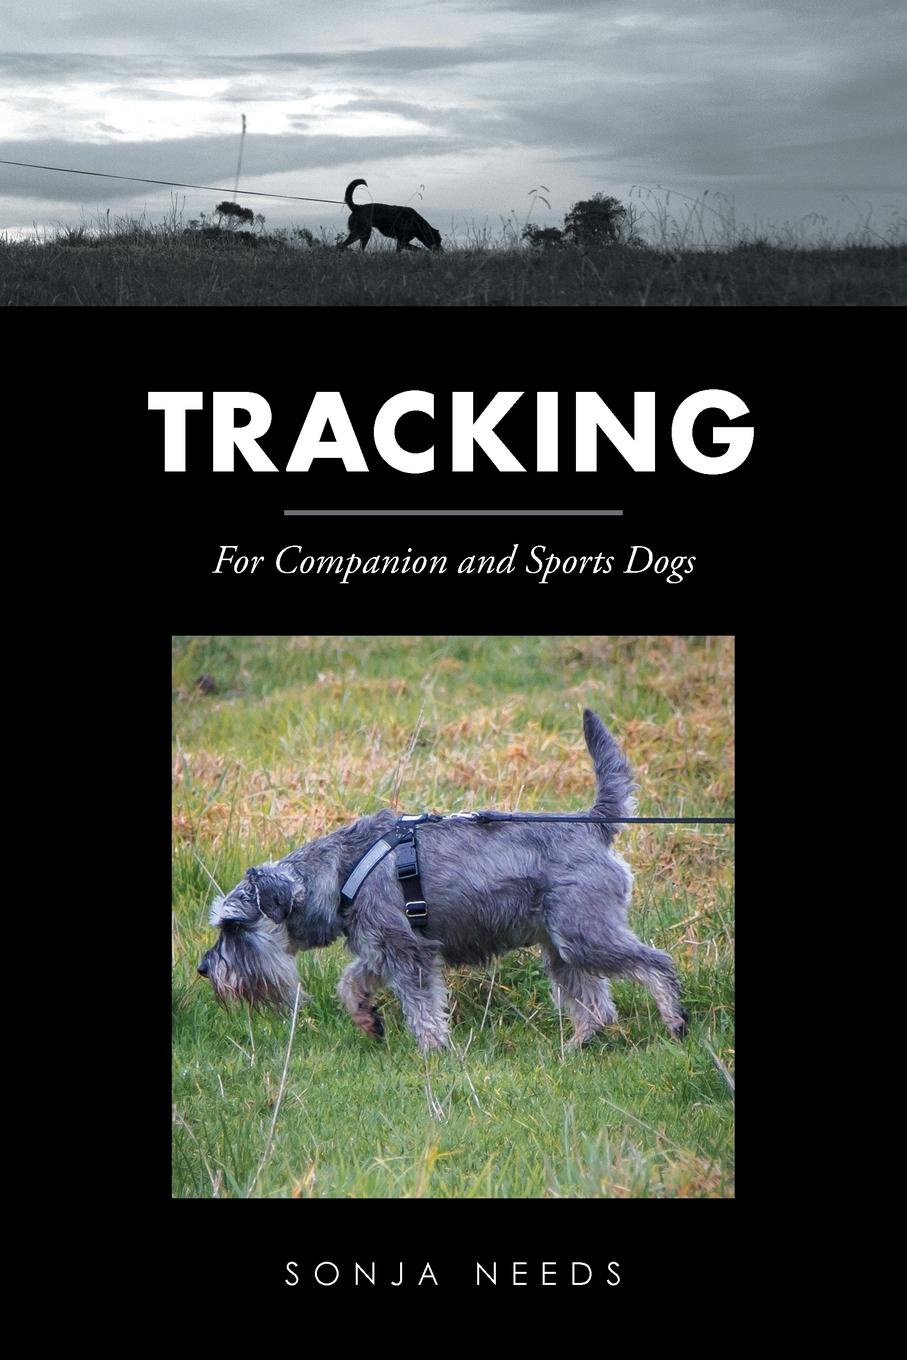 Sonja Needs Tracking. For Companion and Sports Dogs